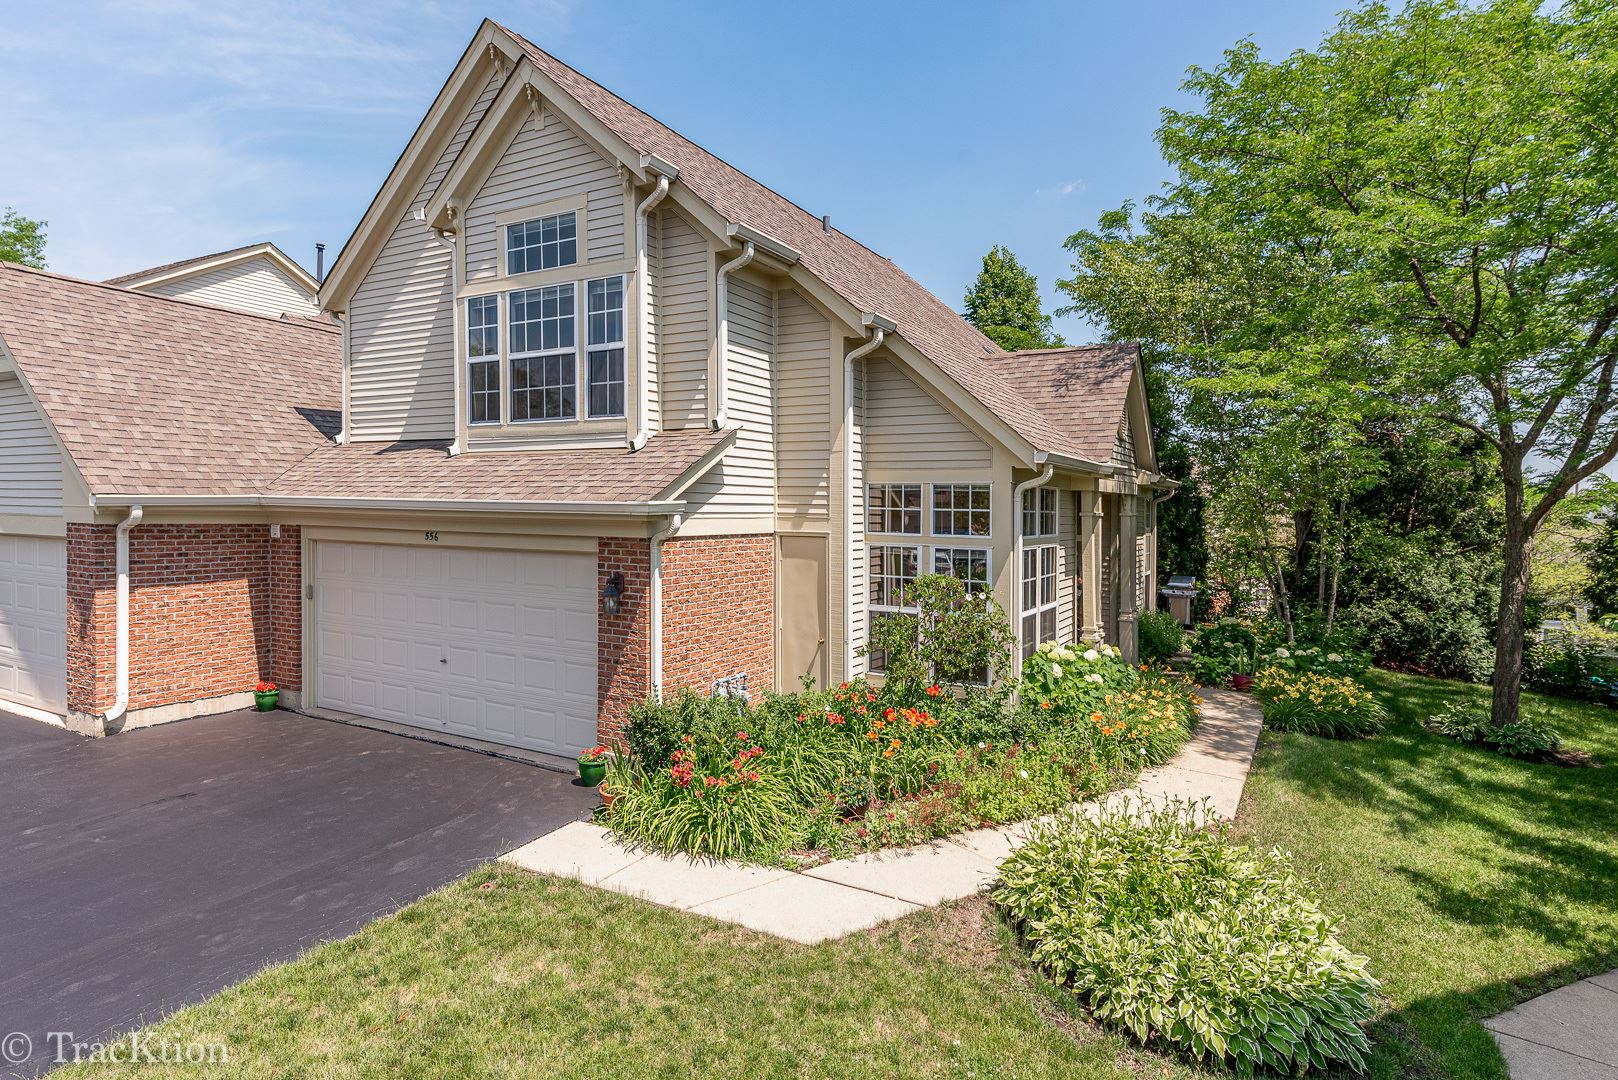 556 Portsmith Court, Crystal Lake, IL 60014 - #: 10767955